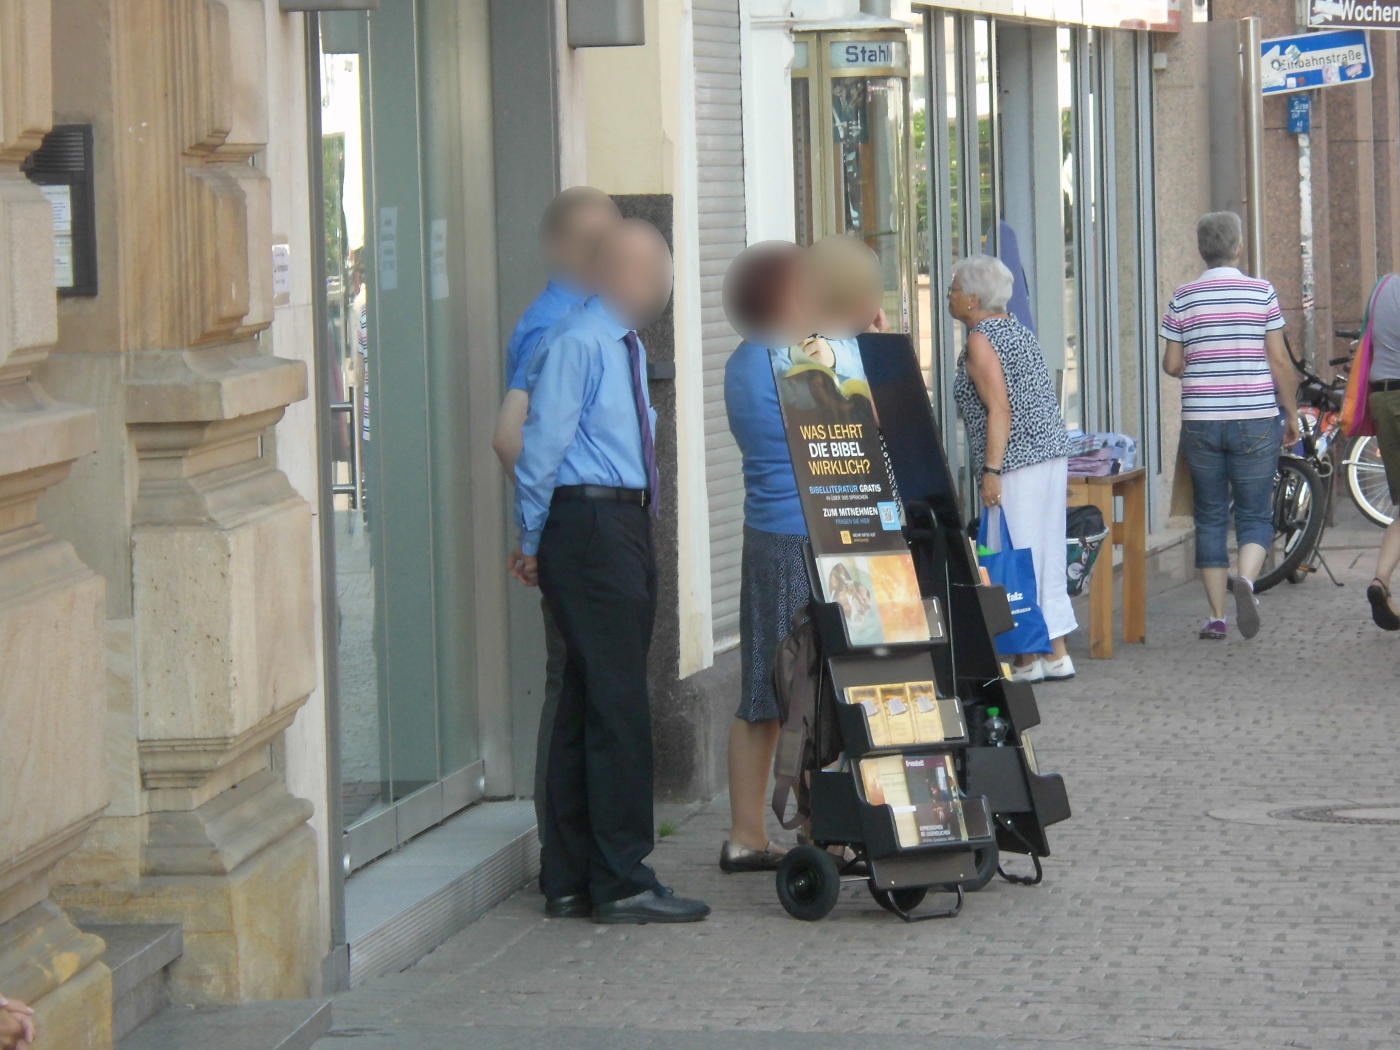 Speyer: Jehovah's liar unmasked